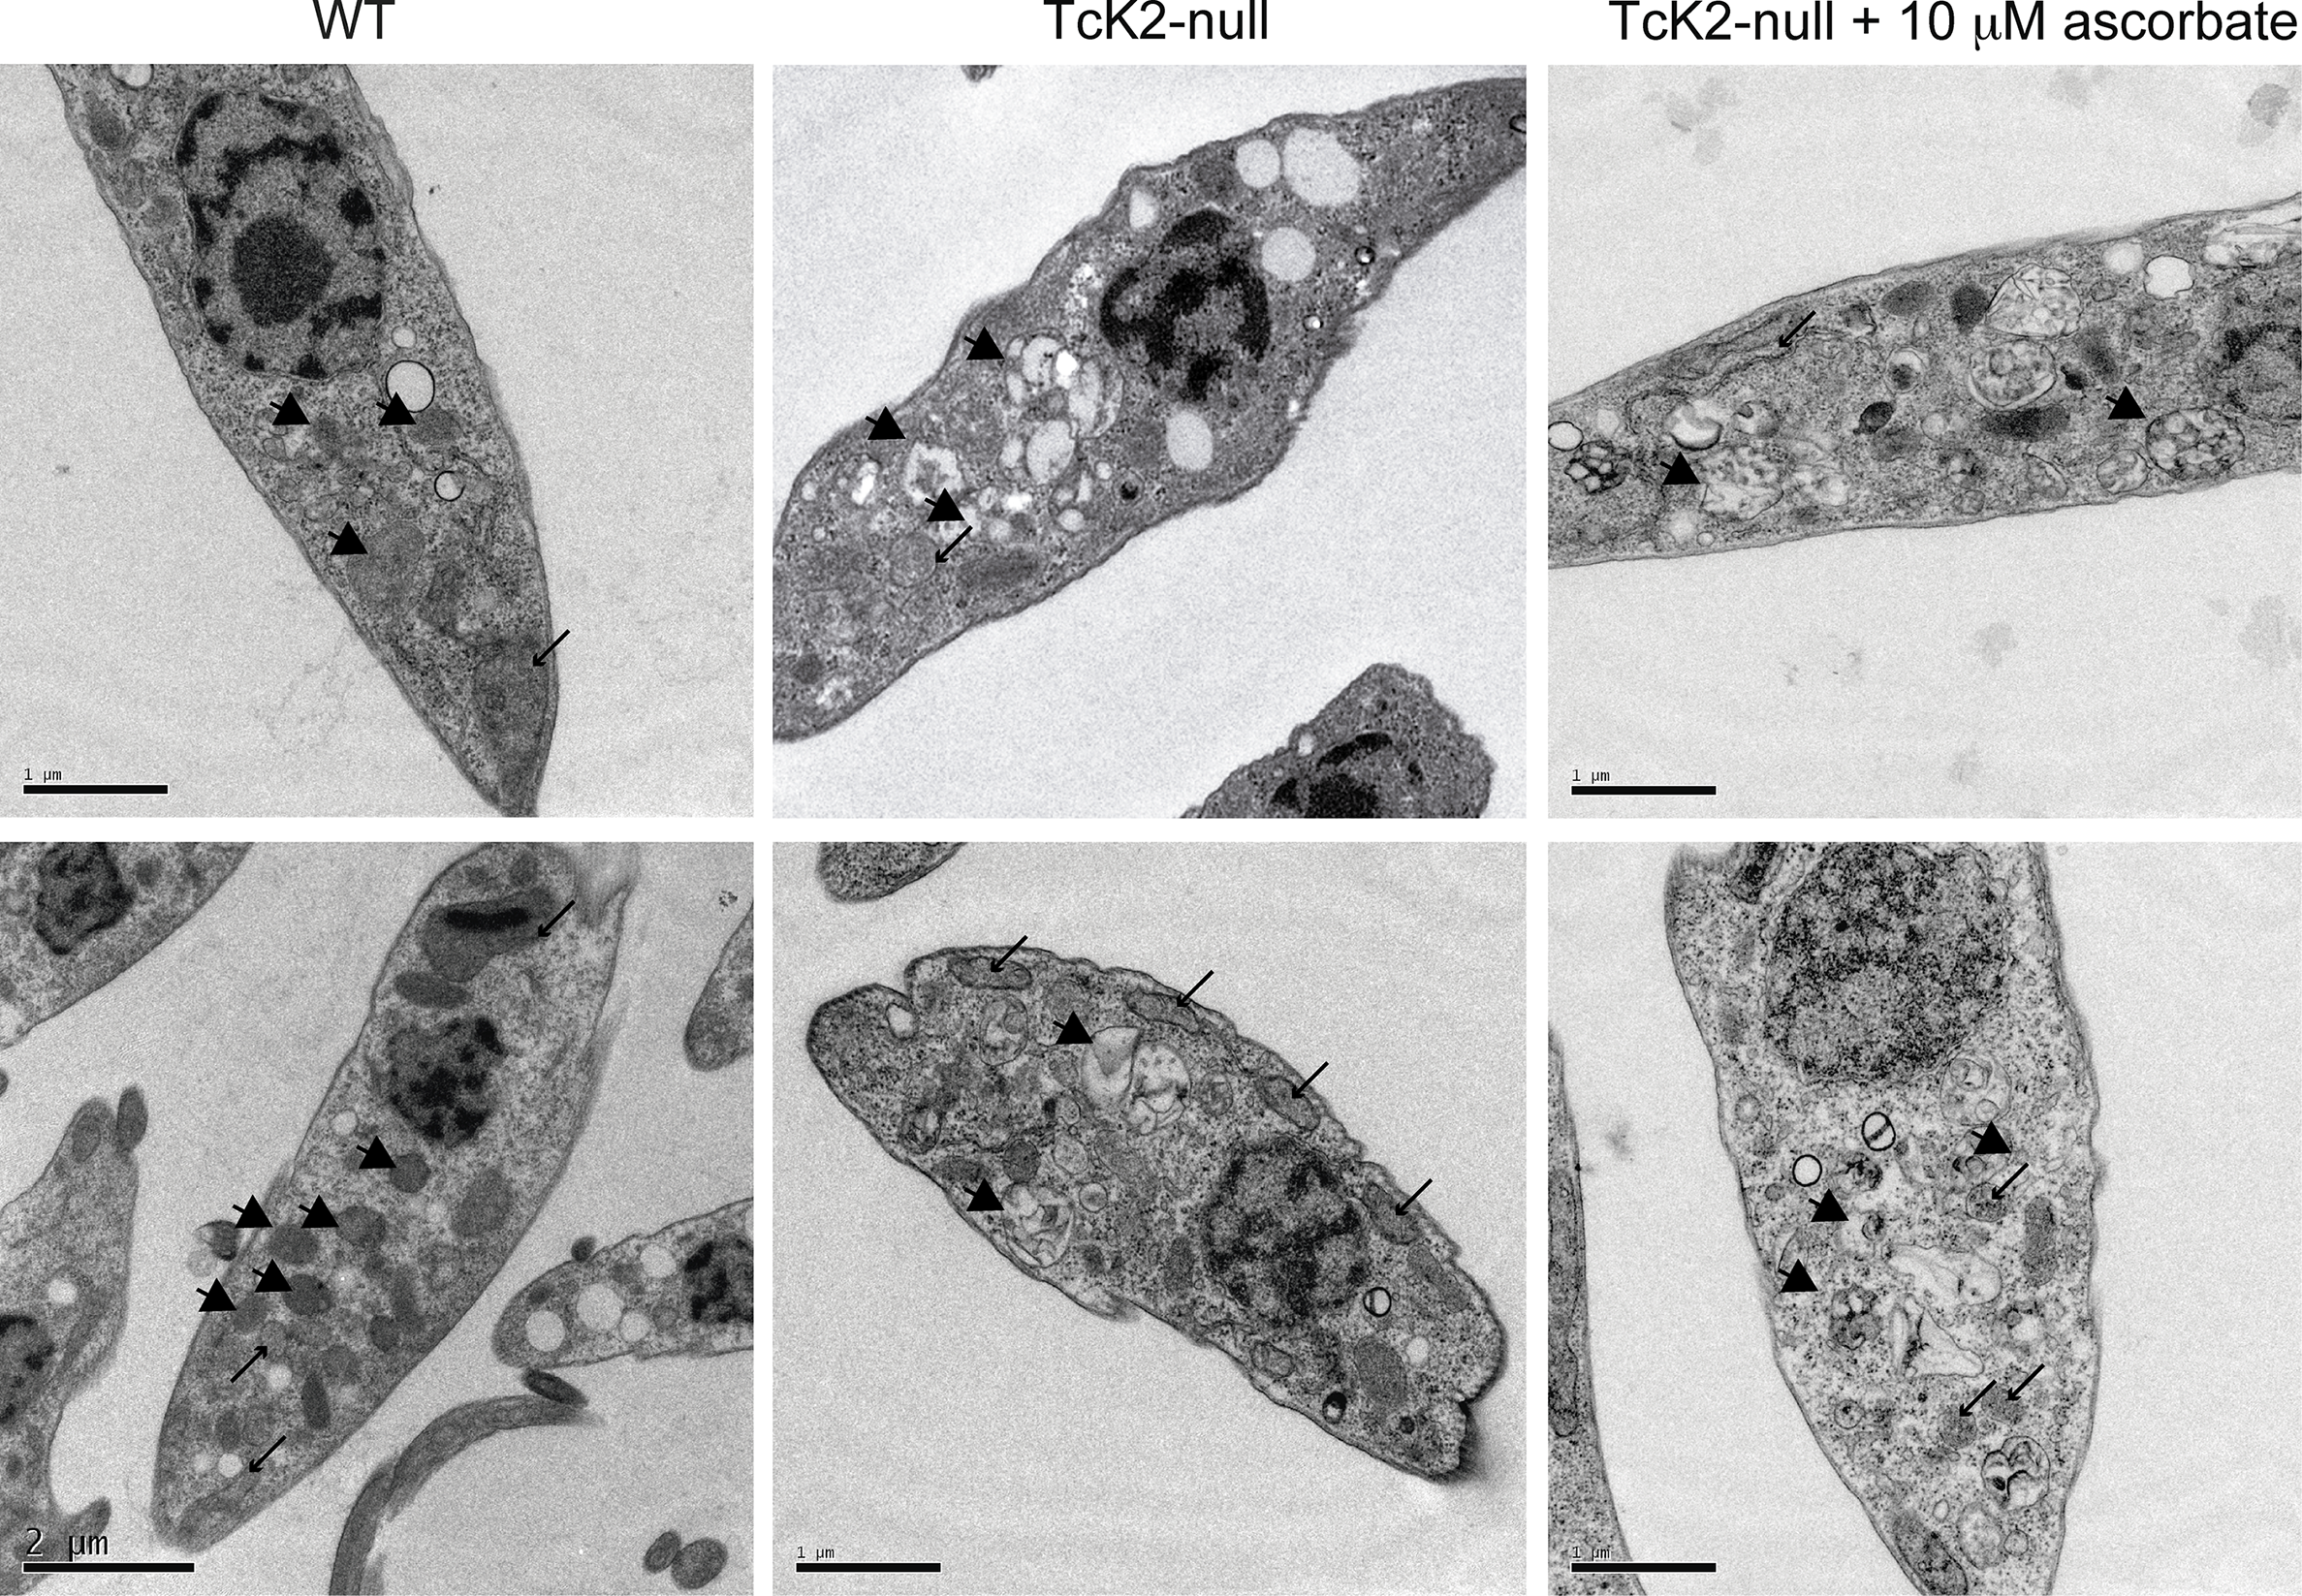 TcK2 null parasites lose electron dense organelles and their contents are not restored by ascorbate.